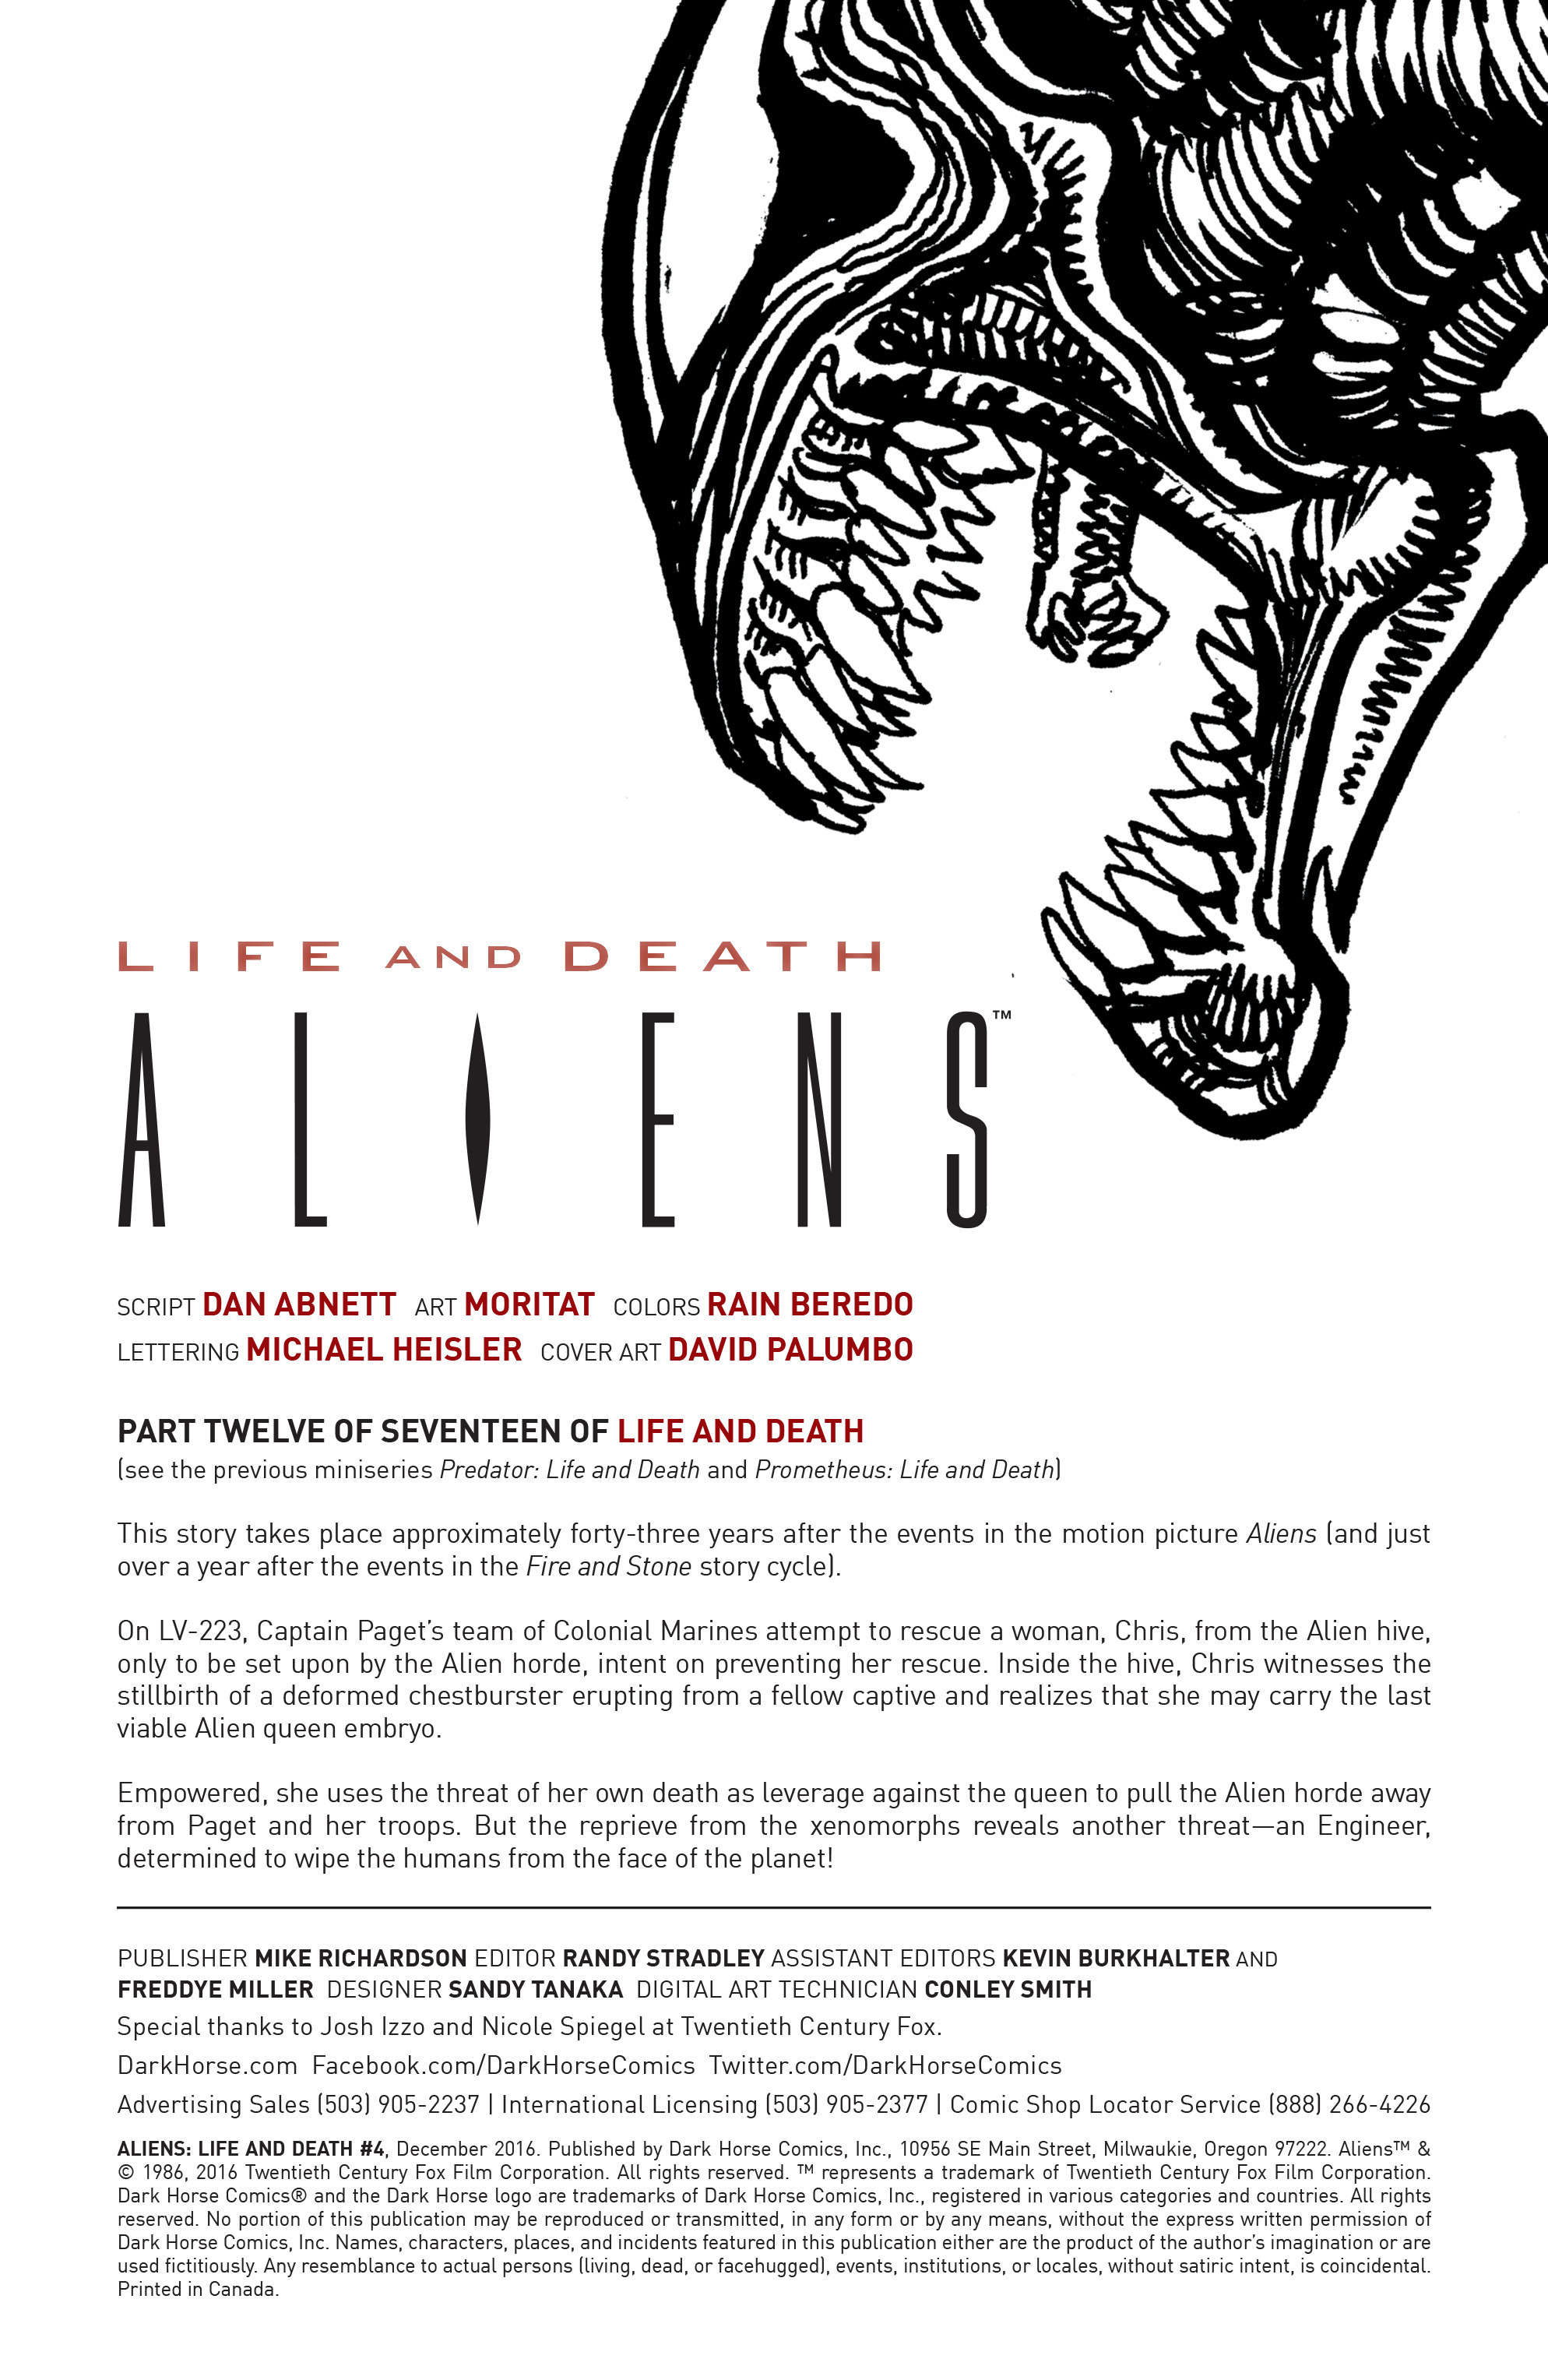 Read online Aliens: Life And Death comic -  Issue #4 - 2